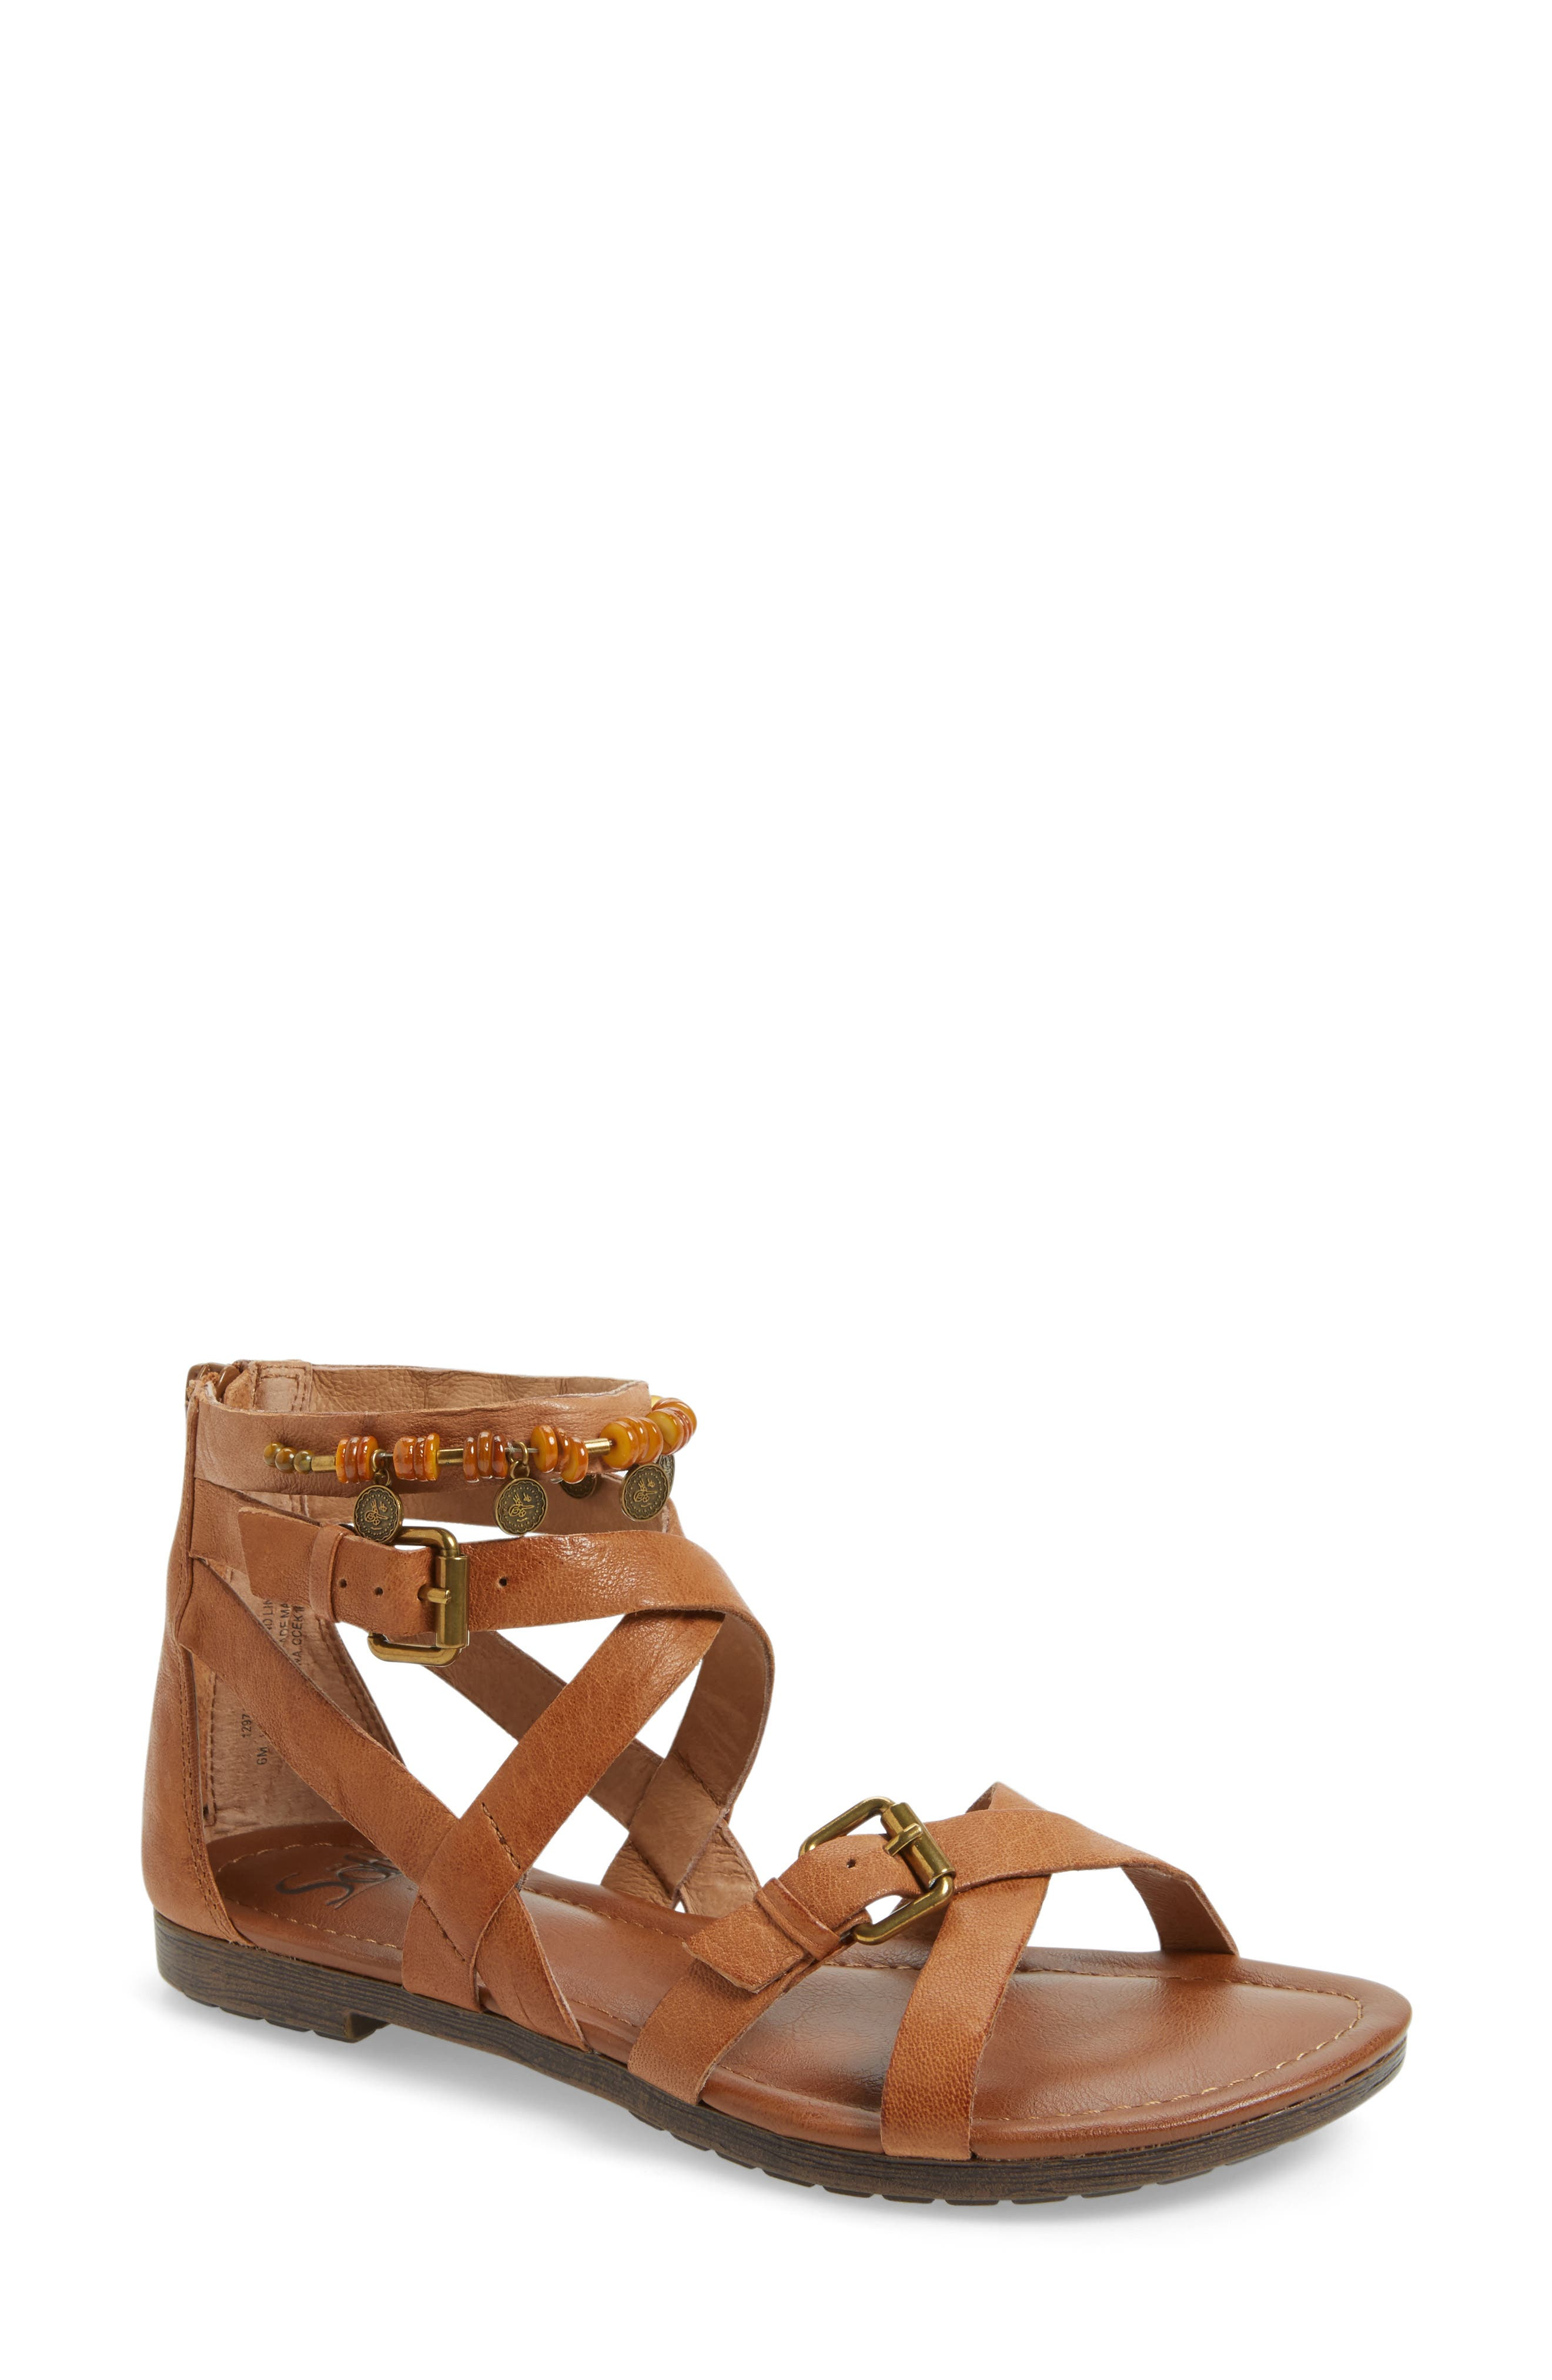 Boca Caged Sandal,                             Main thumbnail 1, color,                             Luggage Leather